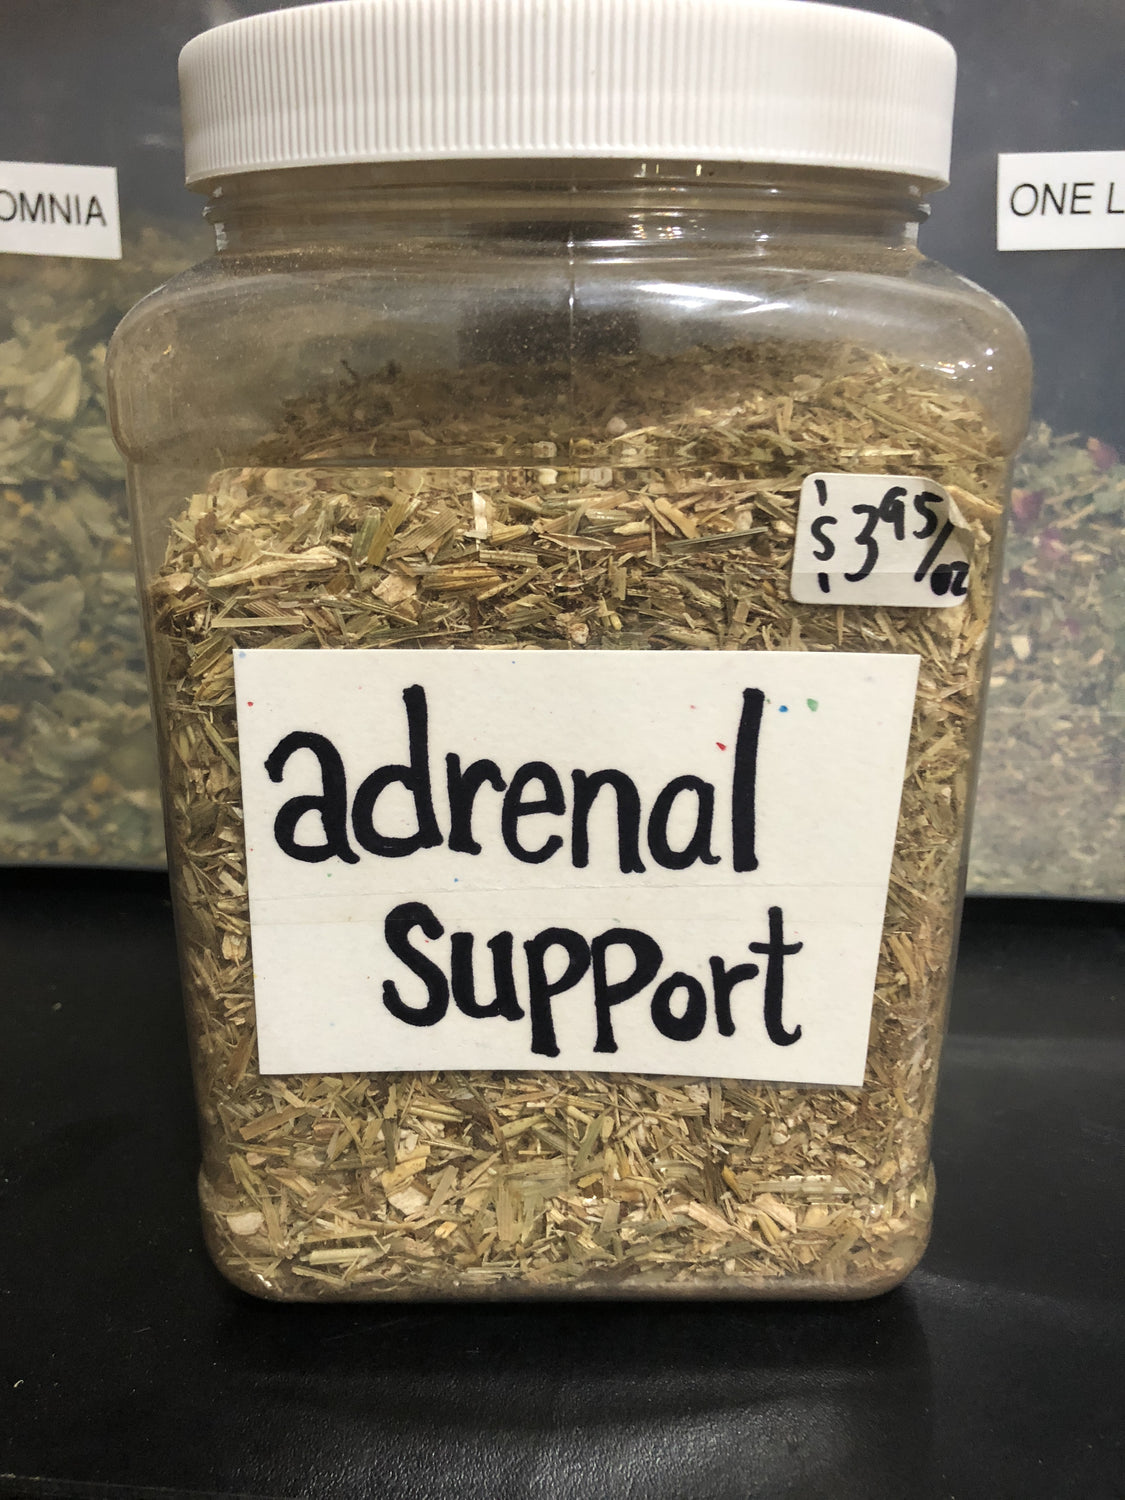 Adrenal support